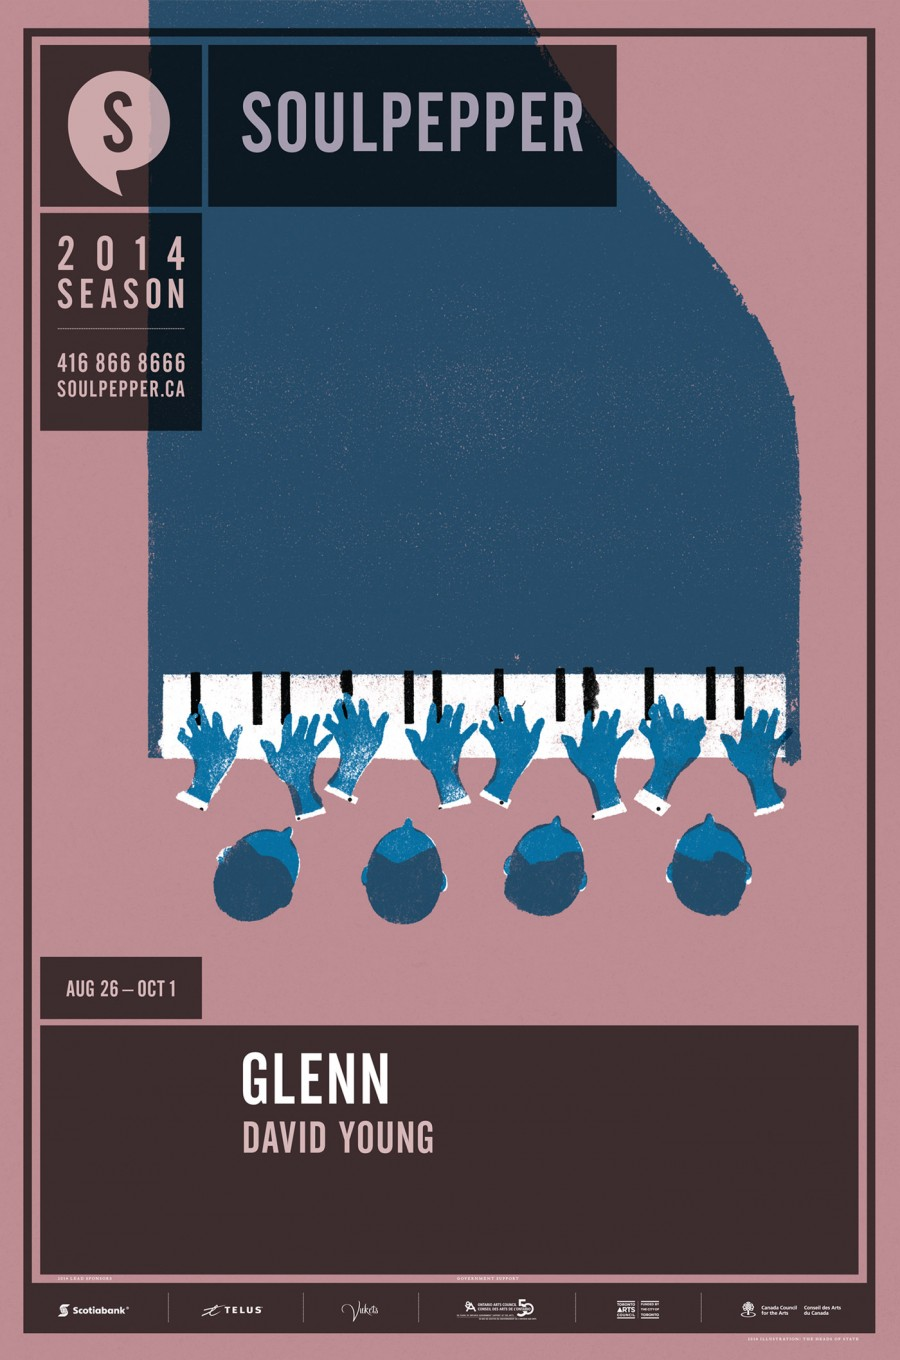 Glenn - Soulpepper Theatre - 2014 Season Poster Series - The Heads of State